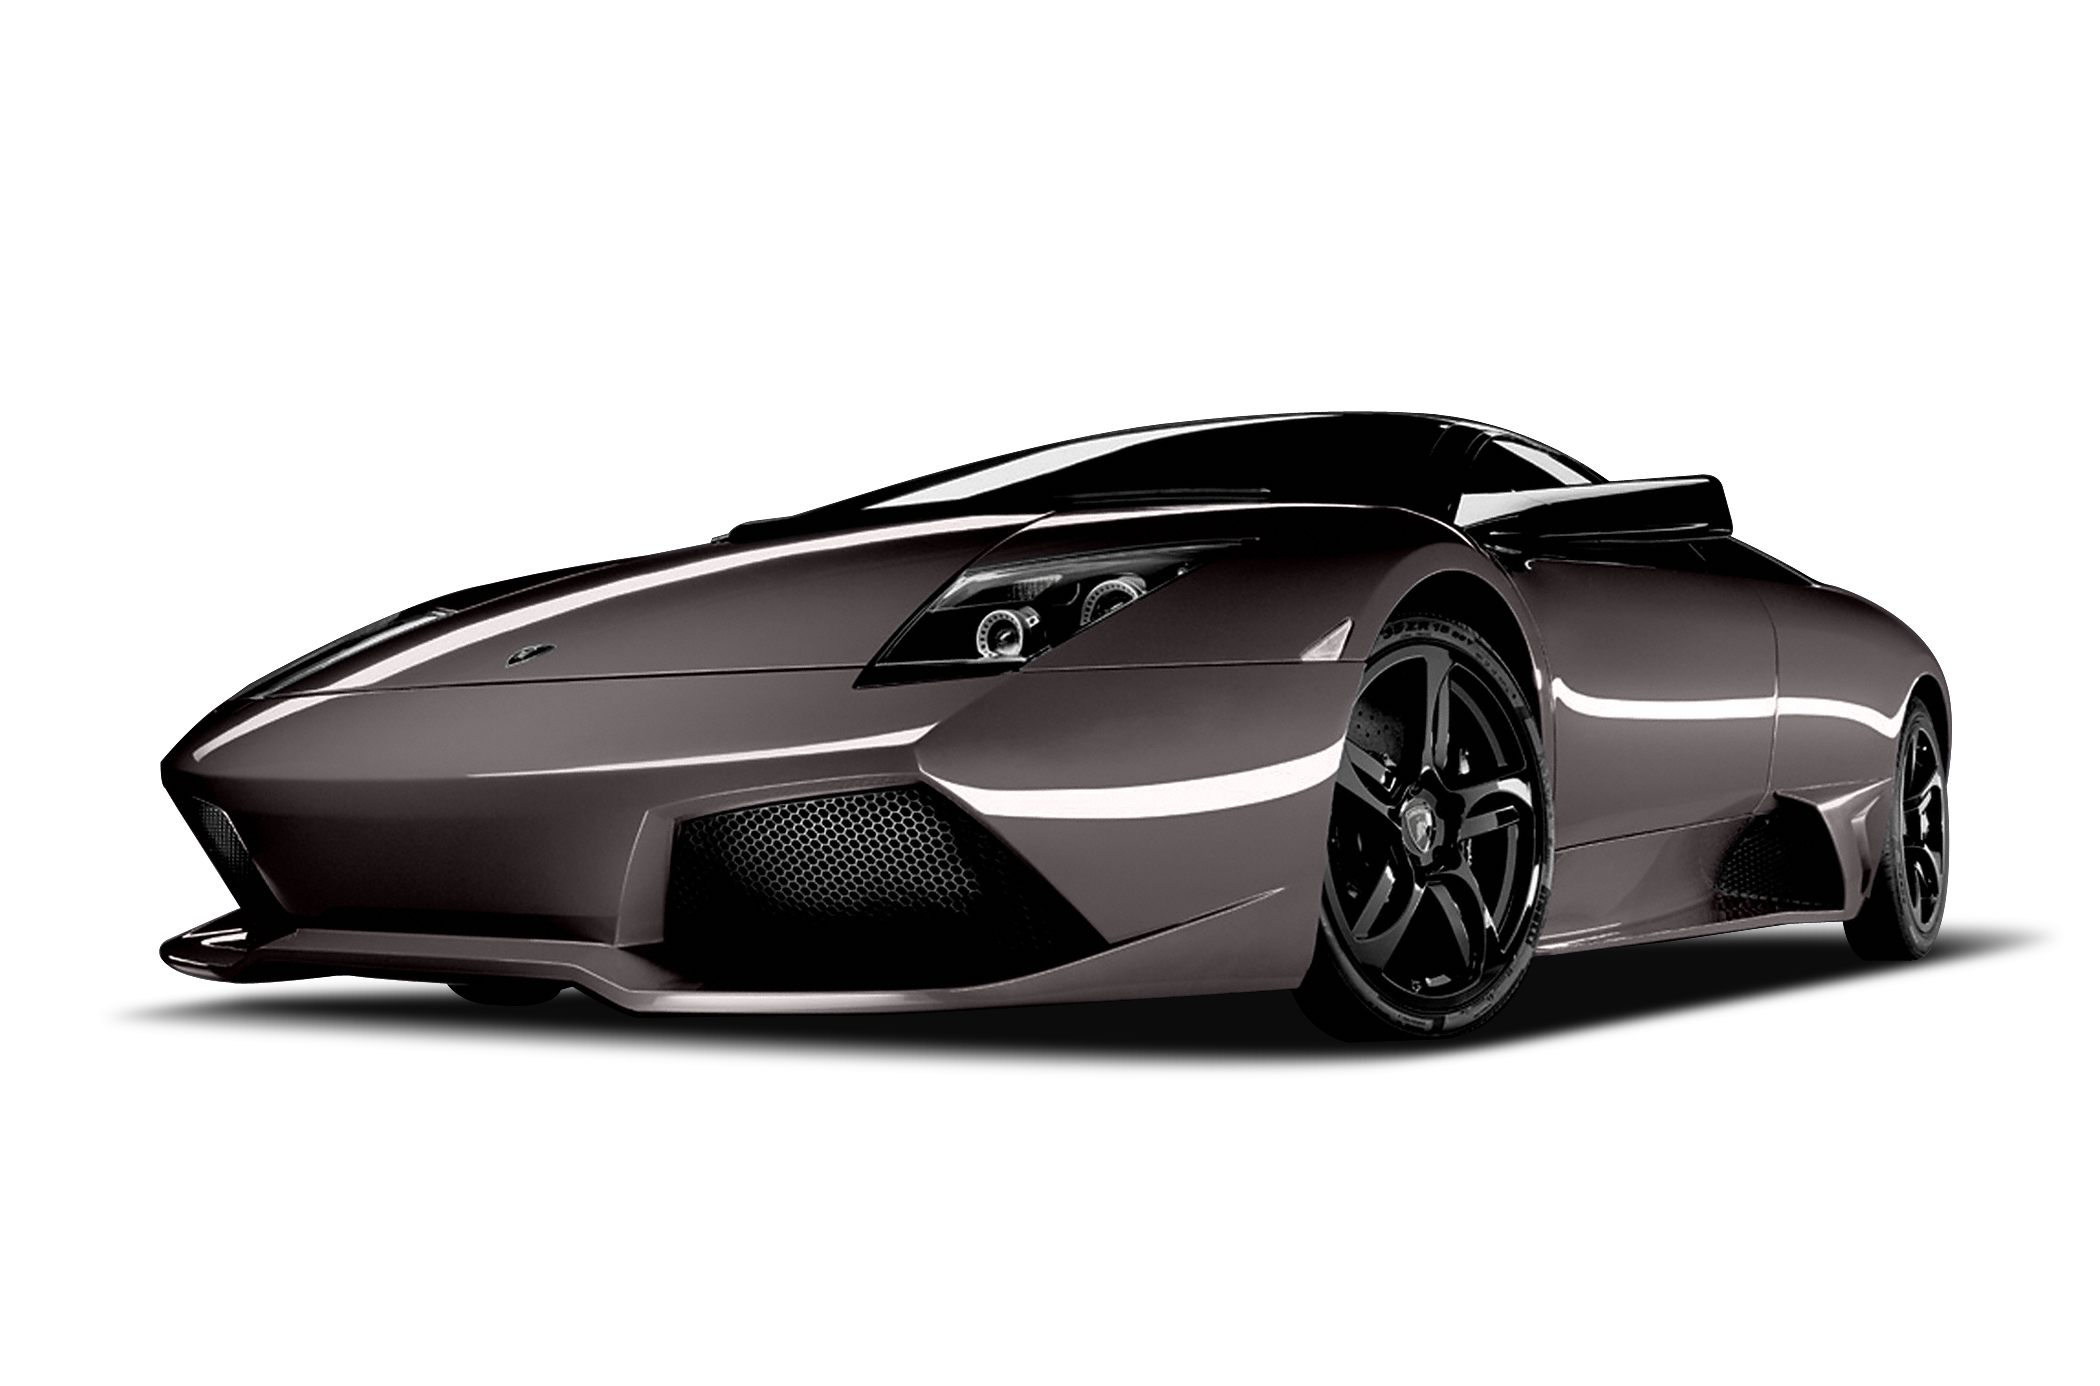 2008 Lamborghini Murcielago